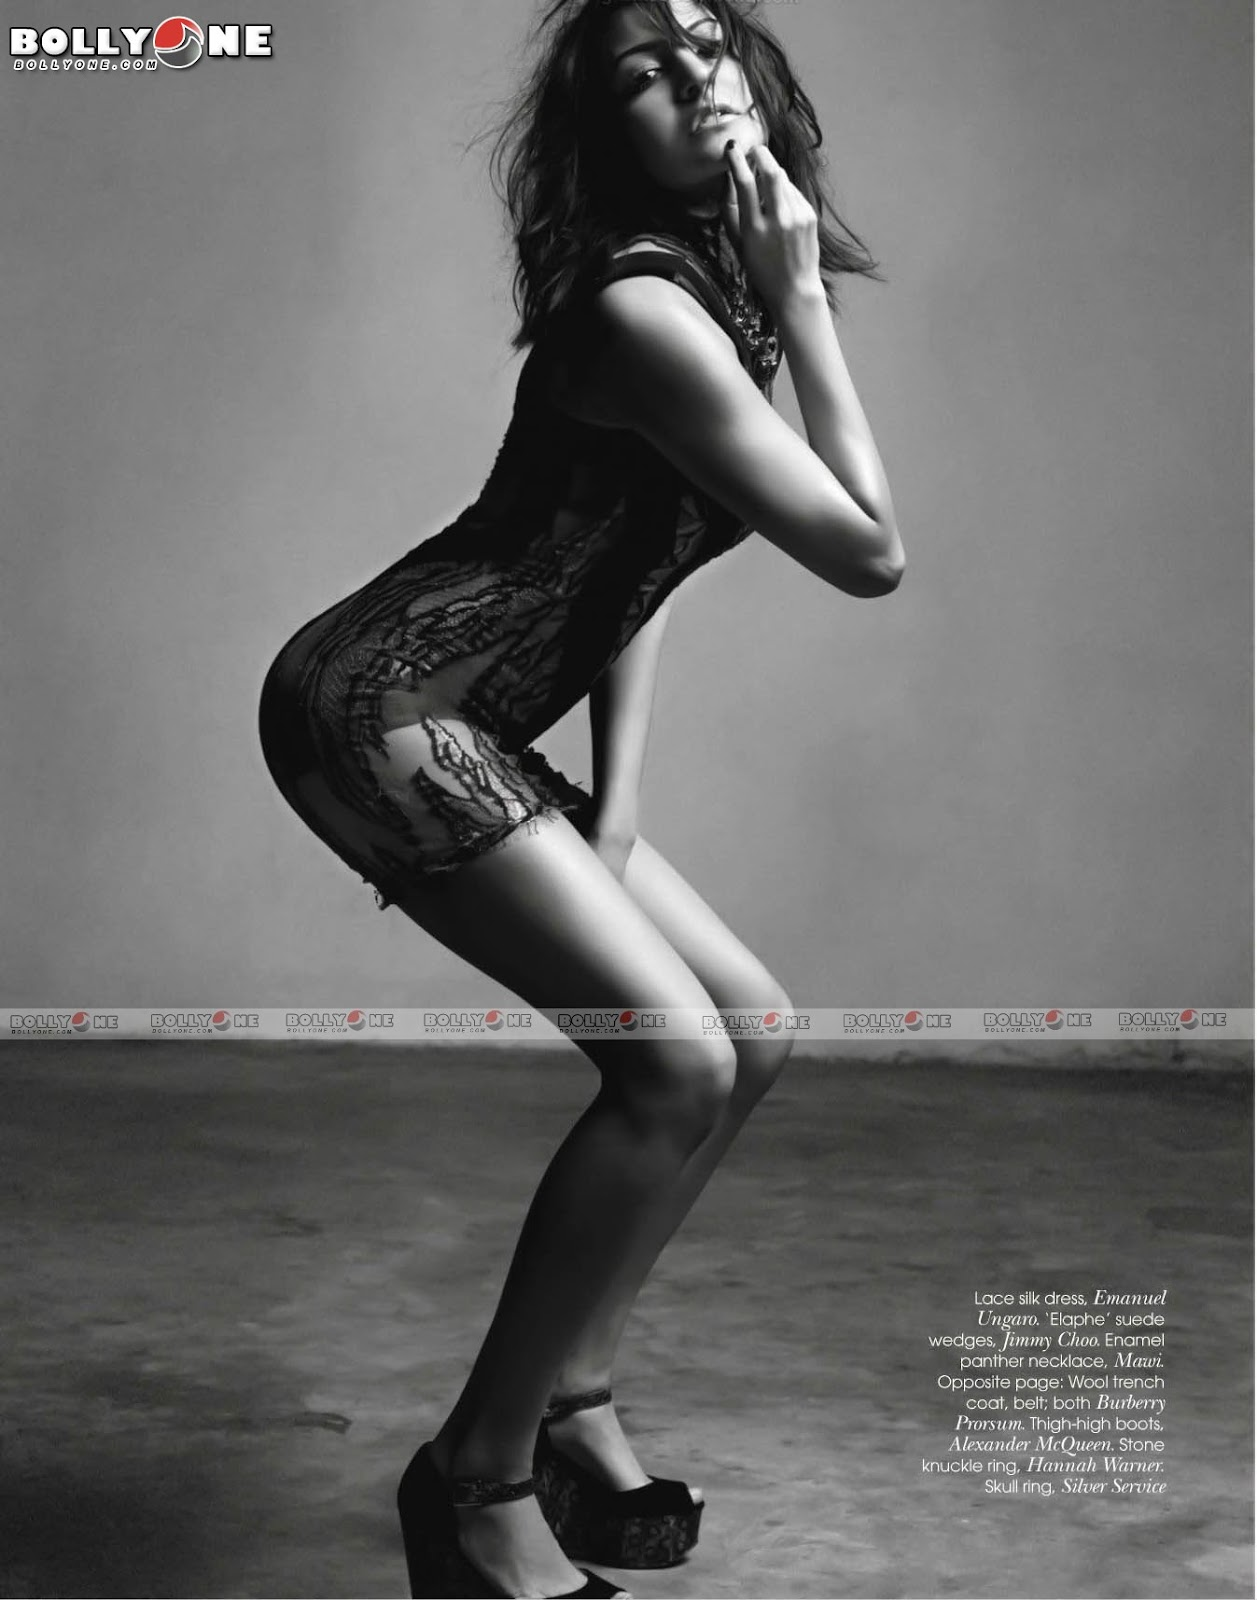 Anushka Sharma Vogue Magazine Scan1 - Anushka Sharma VOGUE Magazine February 2012 Hottest Pics